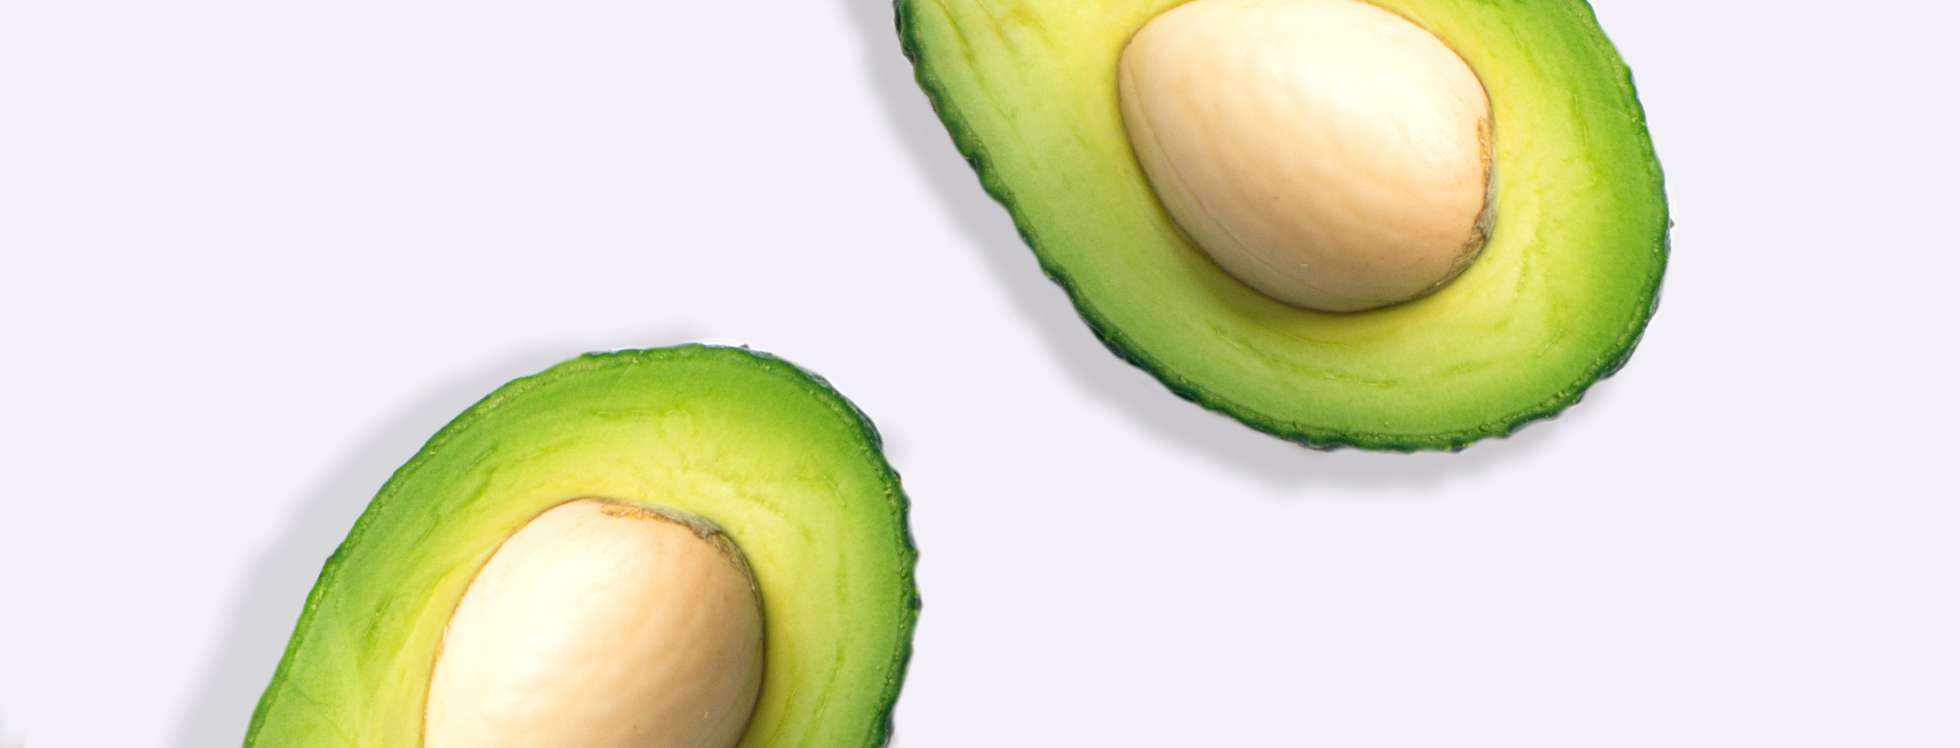 Cross section of avocado on grey background